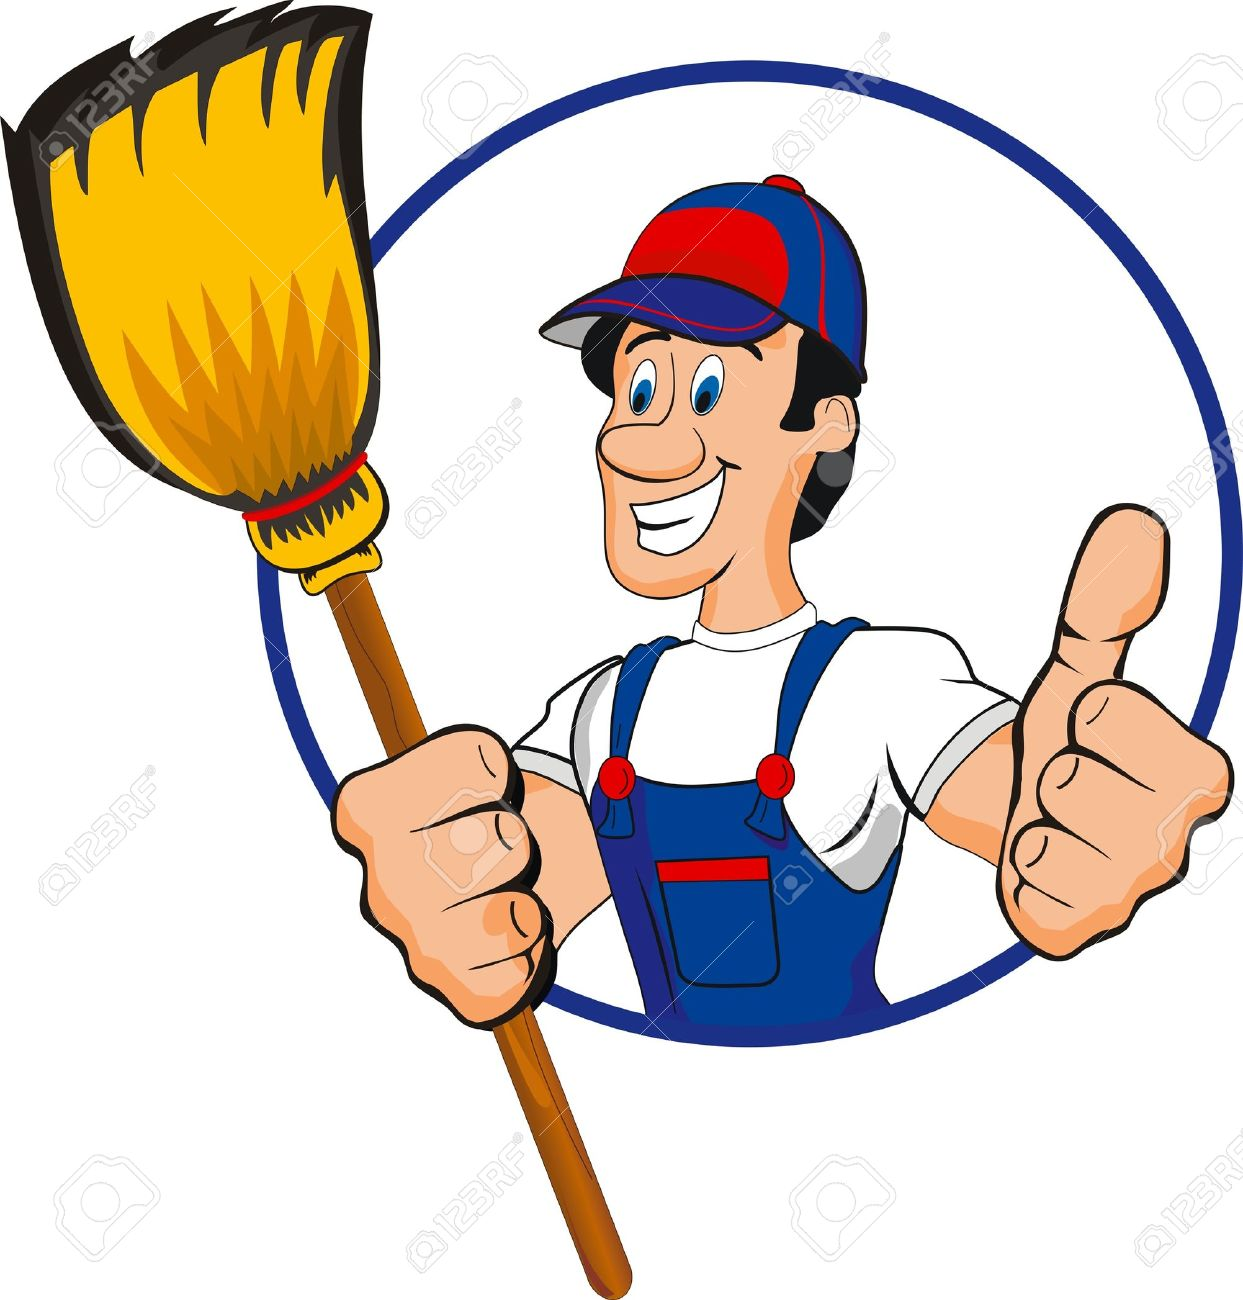 261 Housekeeping free clipart.